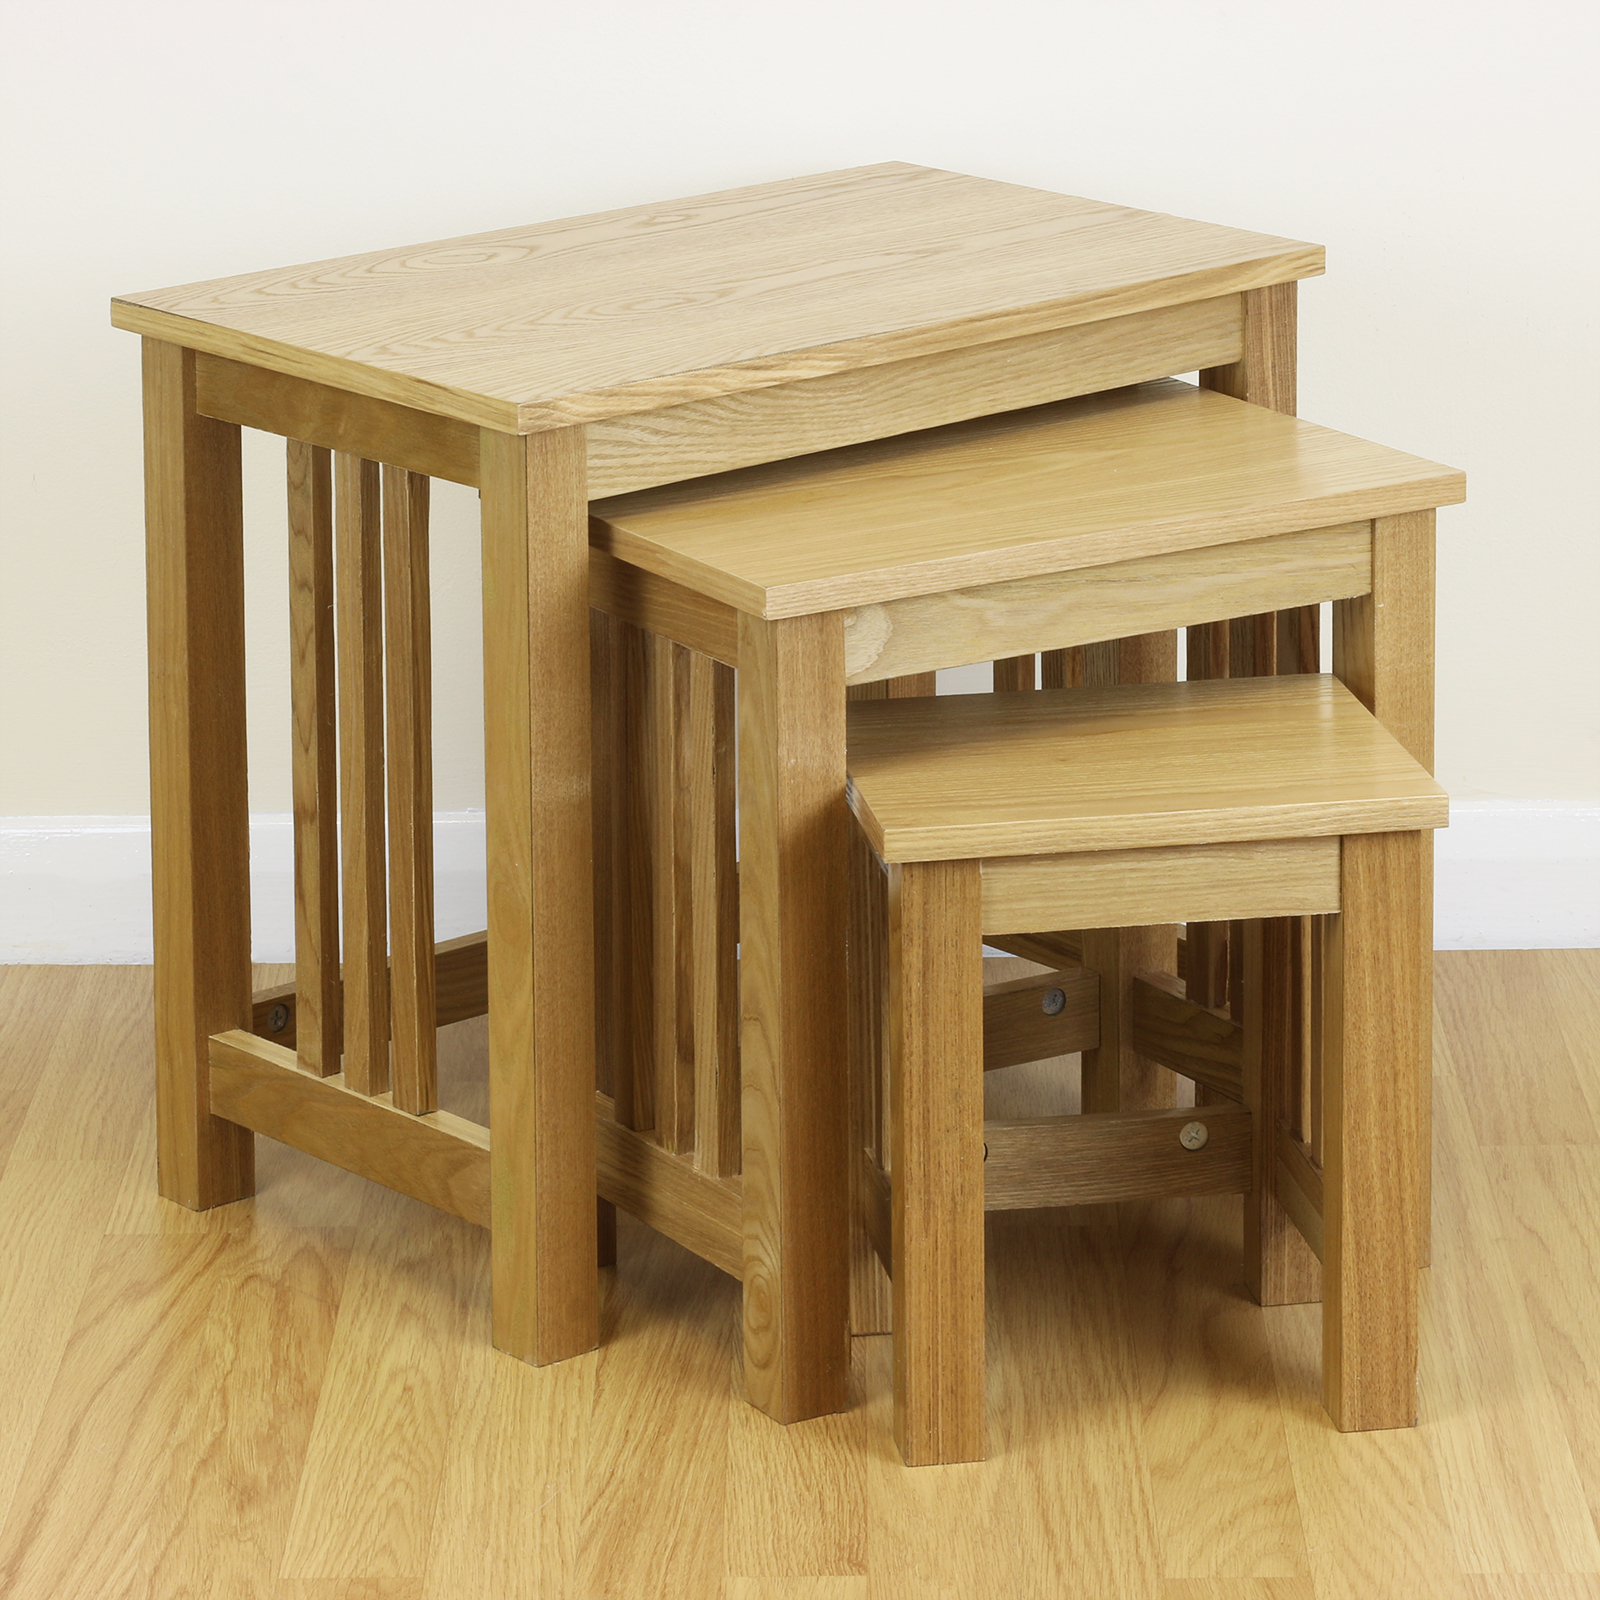 End Tables Clearance: SALE Nest Of 3 Ash Veneer Wooden Side/End/Lamp Tables Home